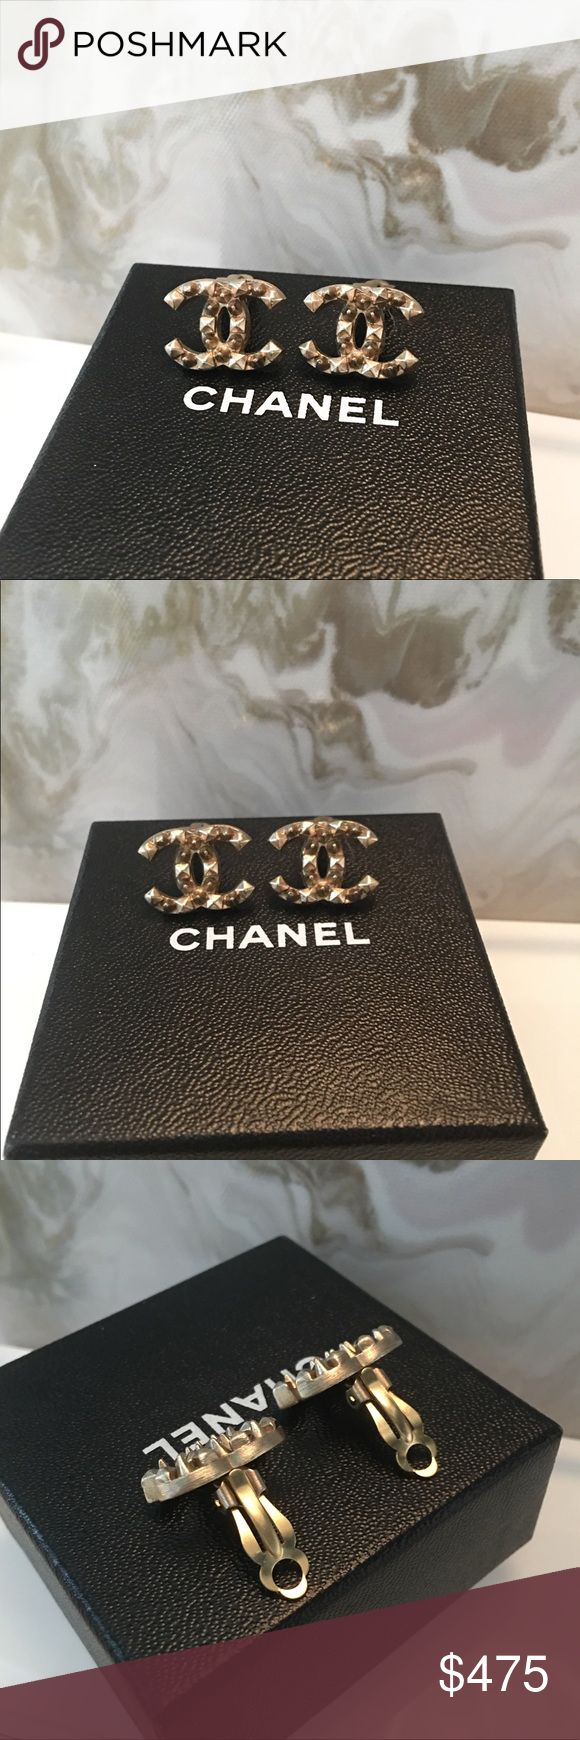 """Auth Chanel Studded Light Gold CC Stud Earrings Authentic Chanel Studded CC Clip On Earrings. Very light Brushed gold metal with square and round studs throughout. Love the rockstud feel on these!! 100% authentic, stamping on the back. Clips need pads as shown, does not come with box. Measures approx W 0.7 """" x H 0.6 """". Very good condition. I love Clip ons because they don't droop on your ear and can be adjusted to your ear. CHANEL Jewelry Earrings"""